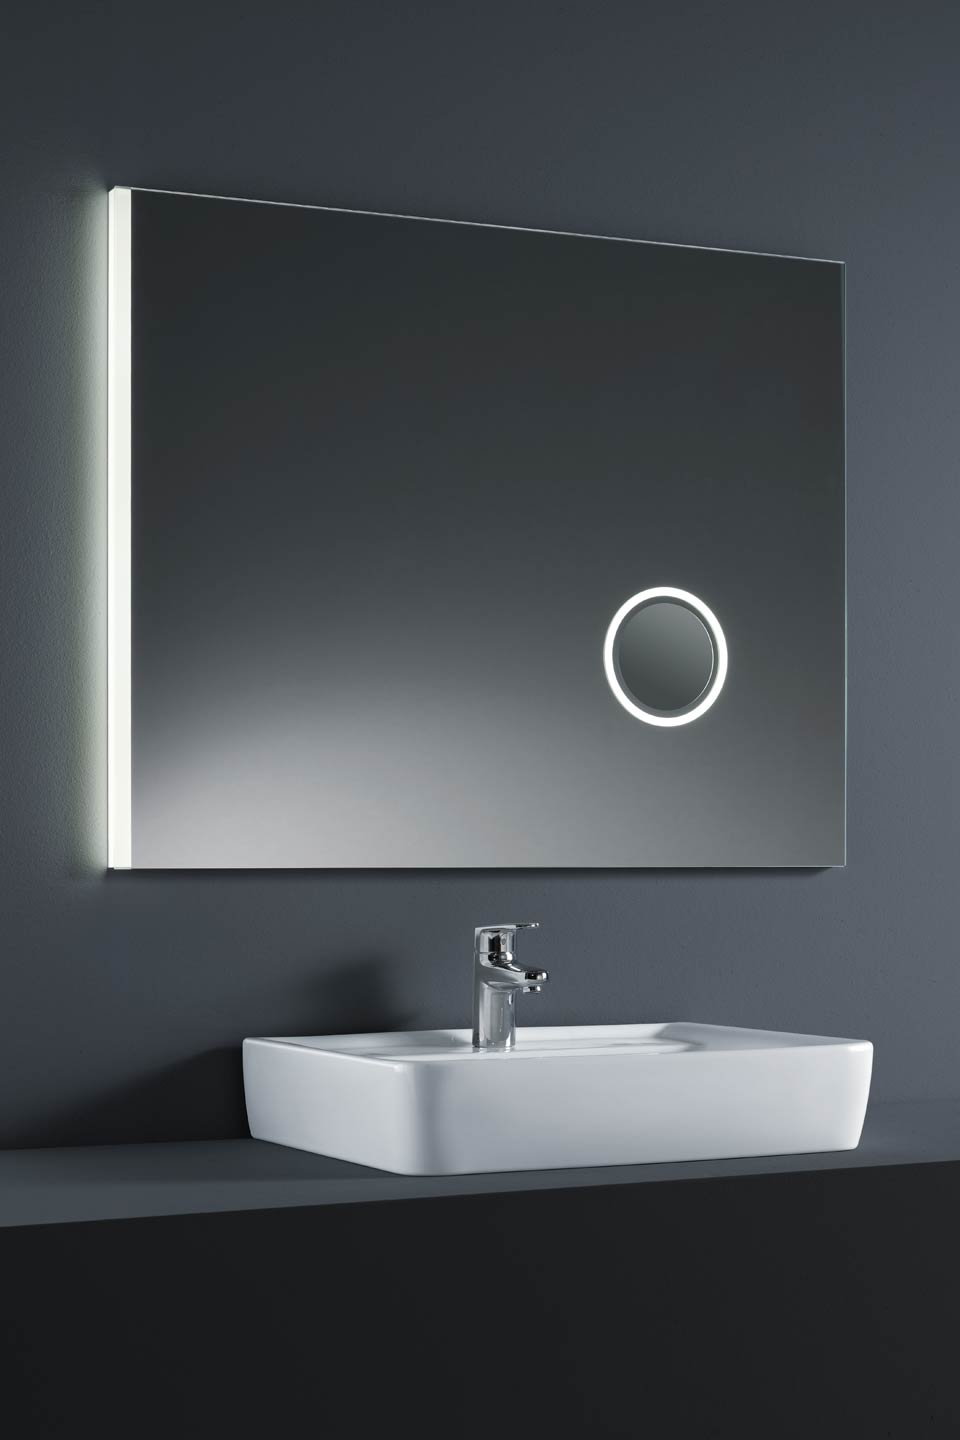 miroir lumineux led avec partie grossissante int gr e. Black Bedroom Furniture Sets. Home Design Ideas